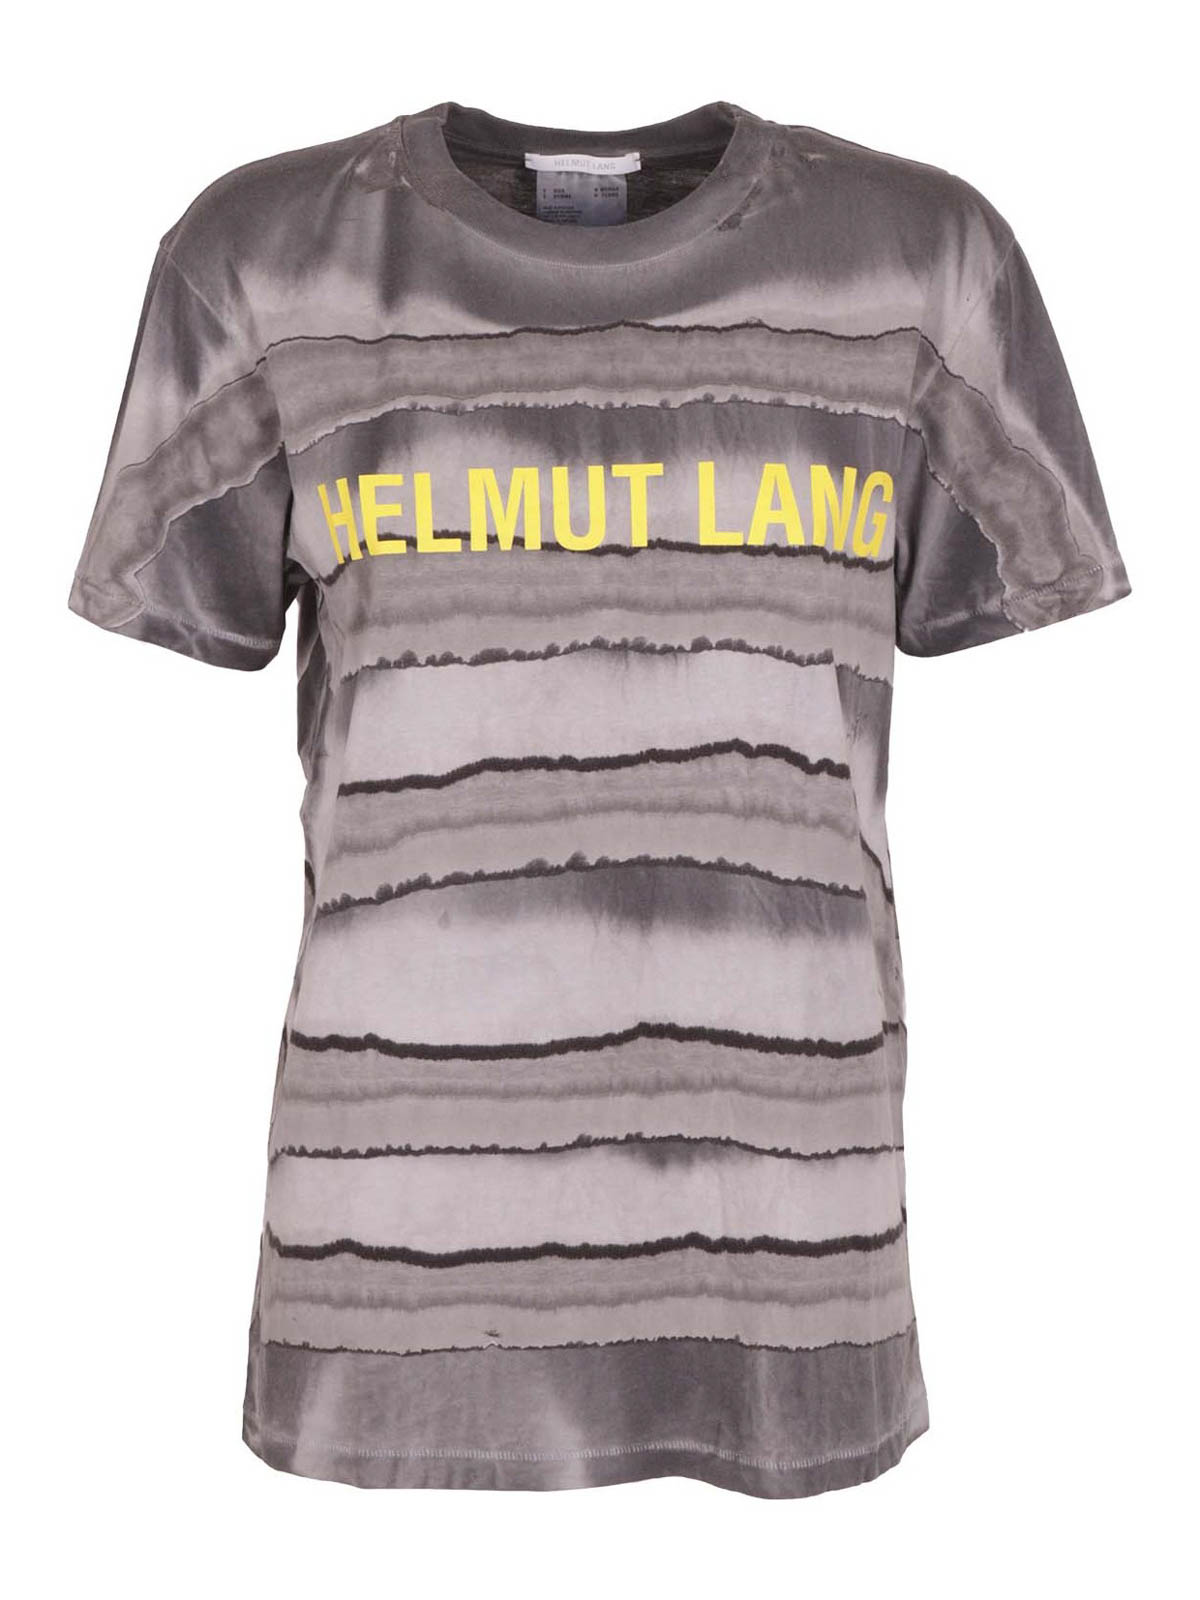 Helmut Lang PATTERNED COTTON T-SHIRT